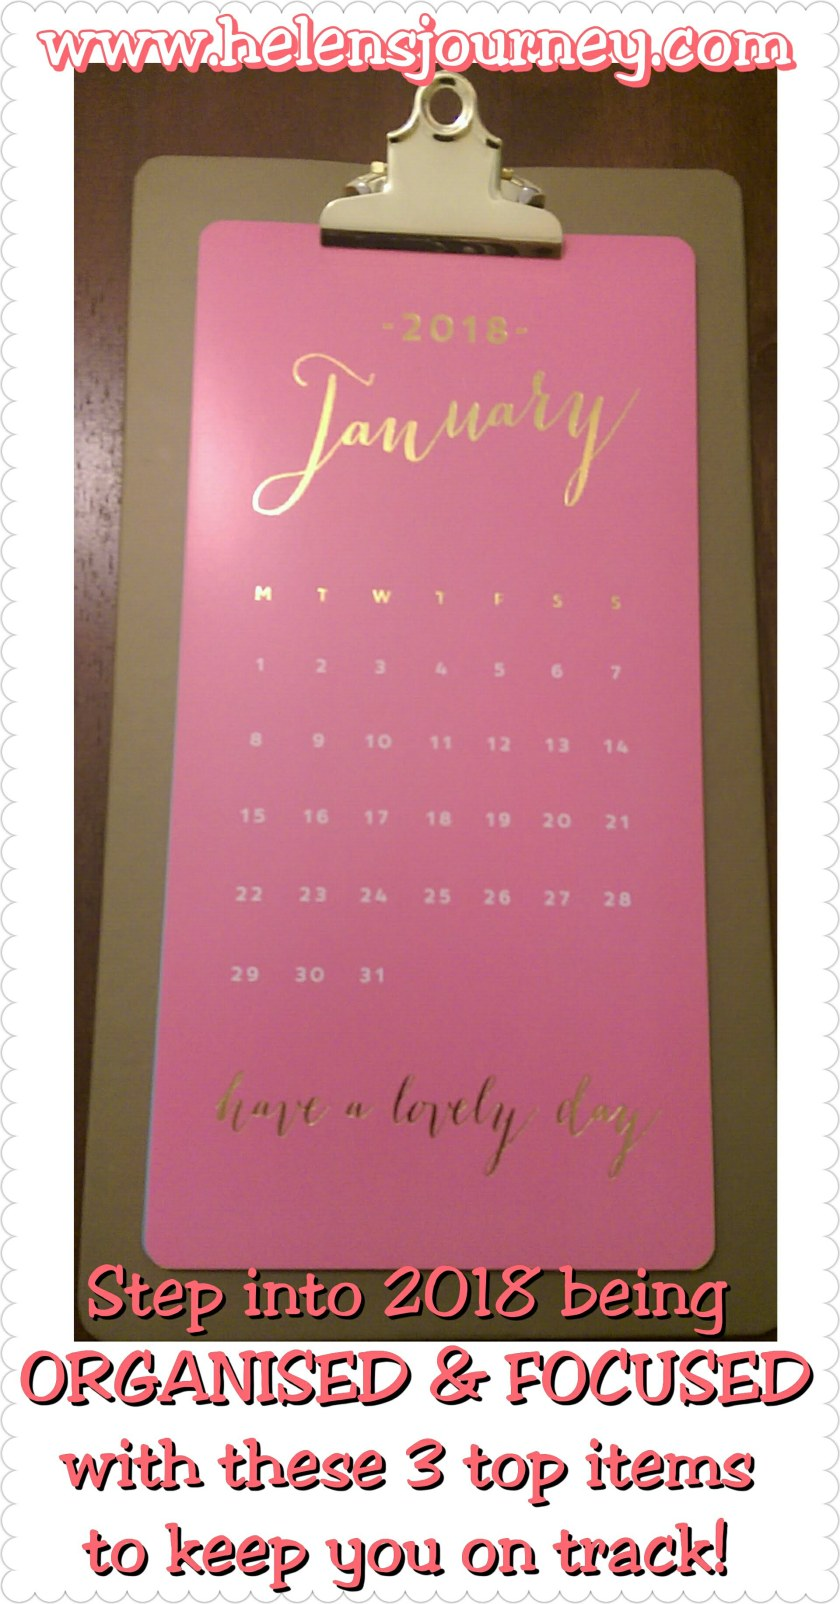 stay organised with a calendar for the new year by helens journey